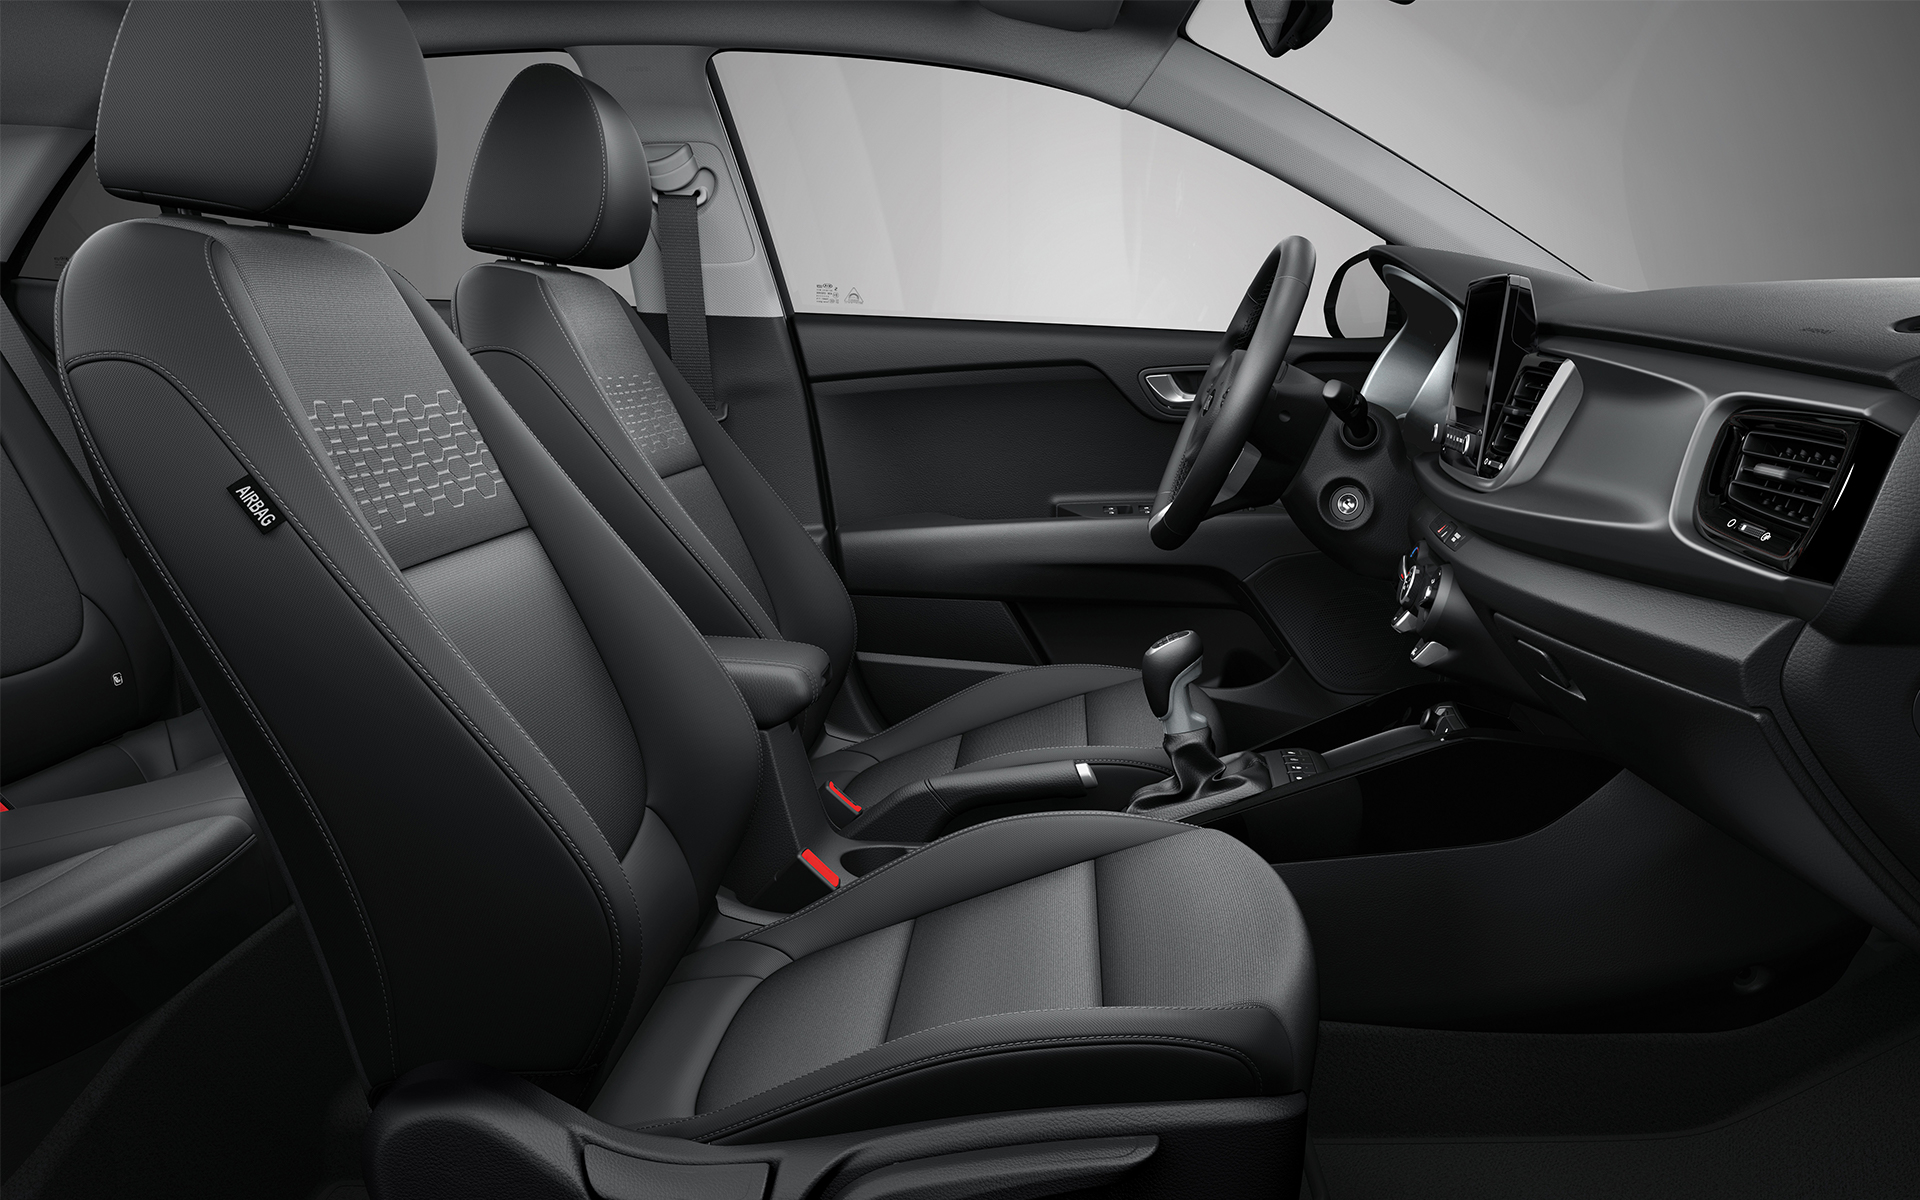 The new Kia Rio comfortable and smart interior